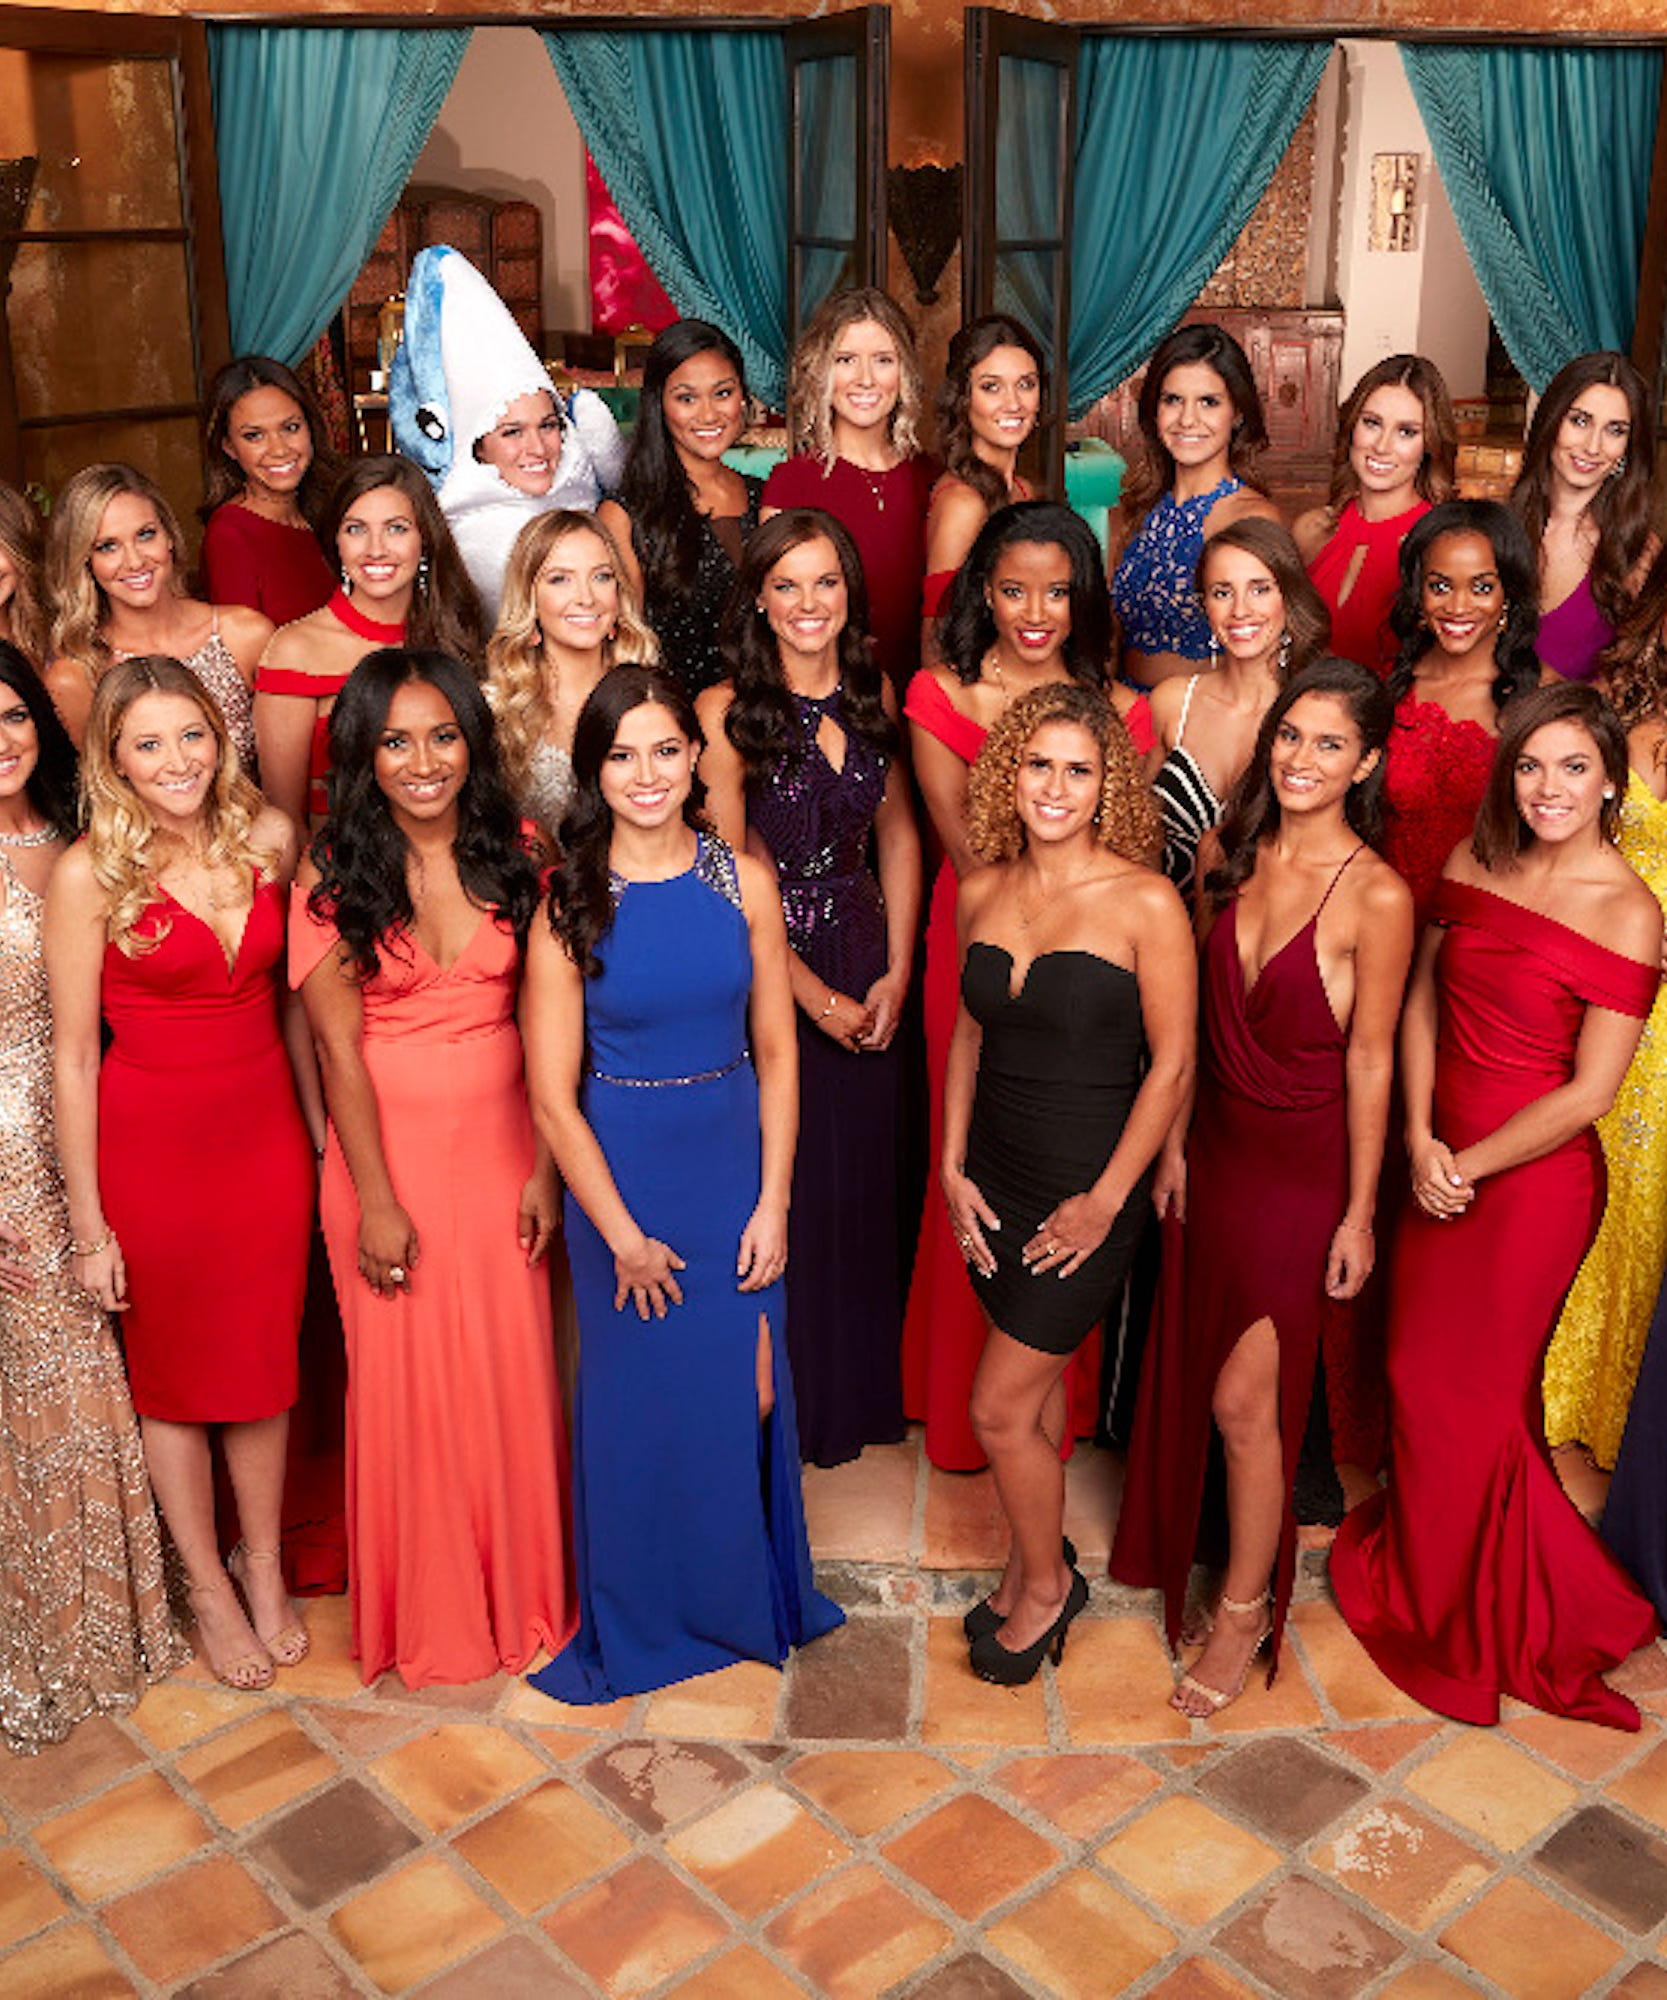 The Bachelor Nick Viall Rose Ceremony Who Went Home